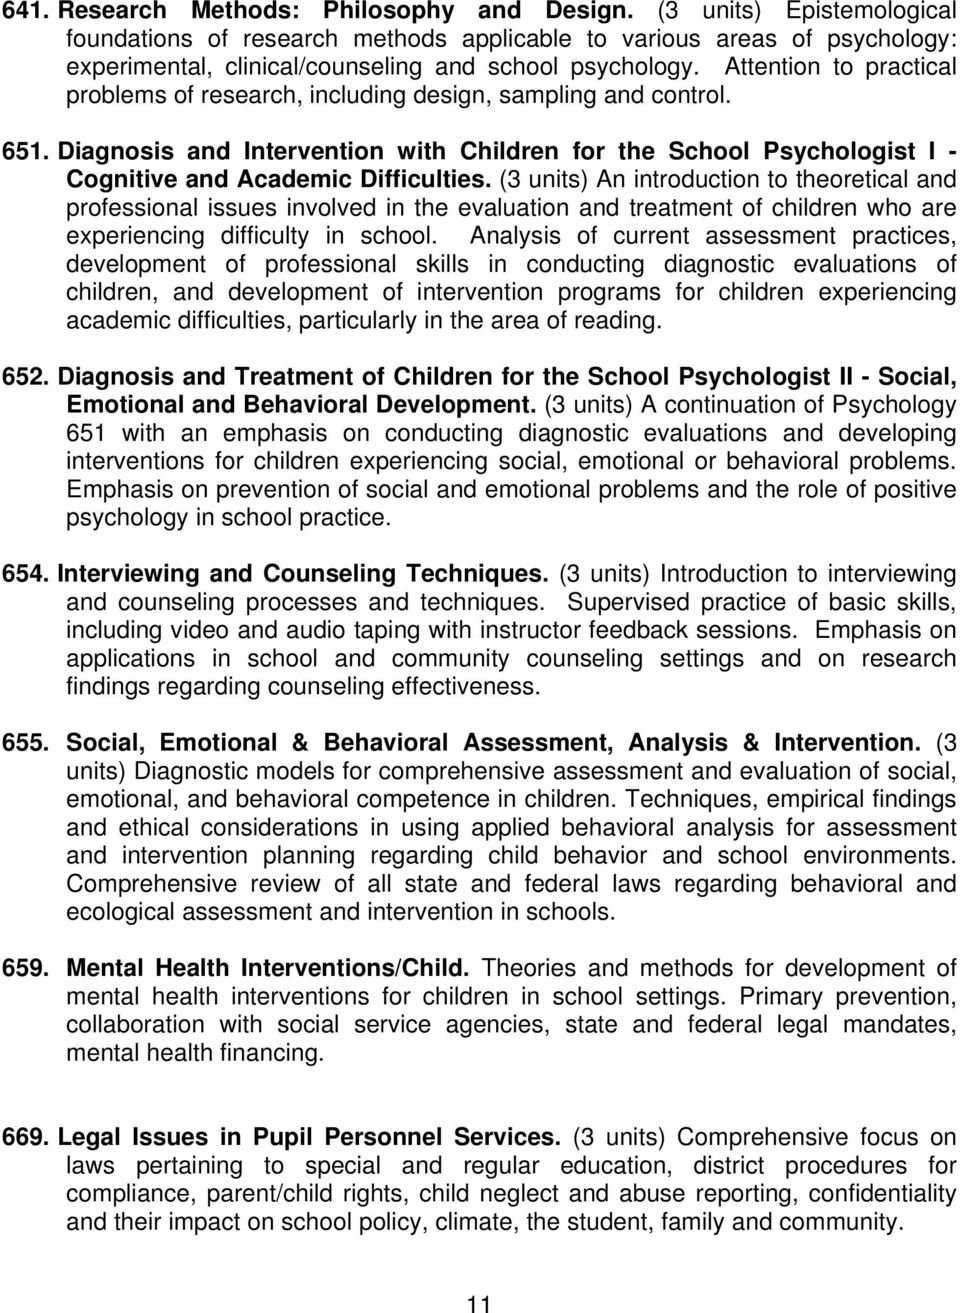 Attention to practical problems of research, including design, sampling and control. 651. Diagnosis and Intervention with Children for the School Psychologist I - Cognitive and Academic Difficulties.